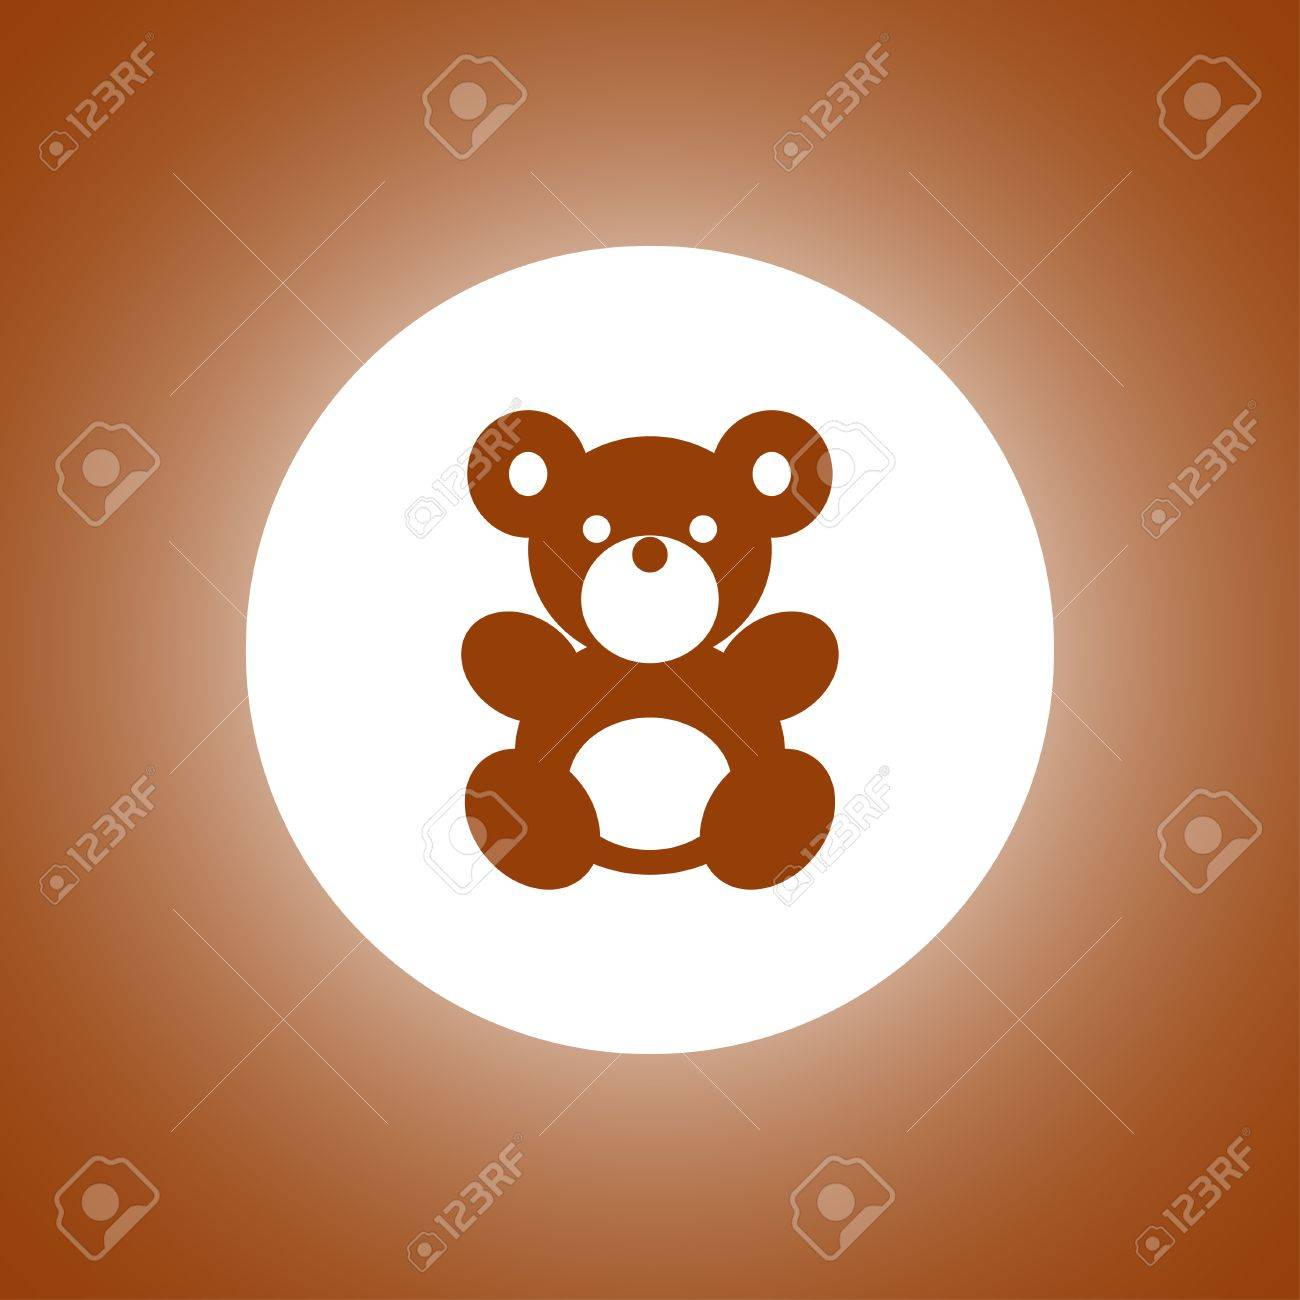 teddy bear plush toy flat icon for apps and websites royalty free